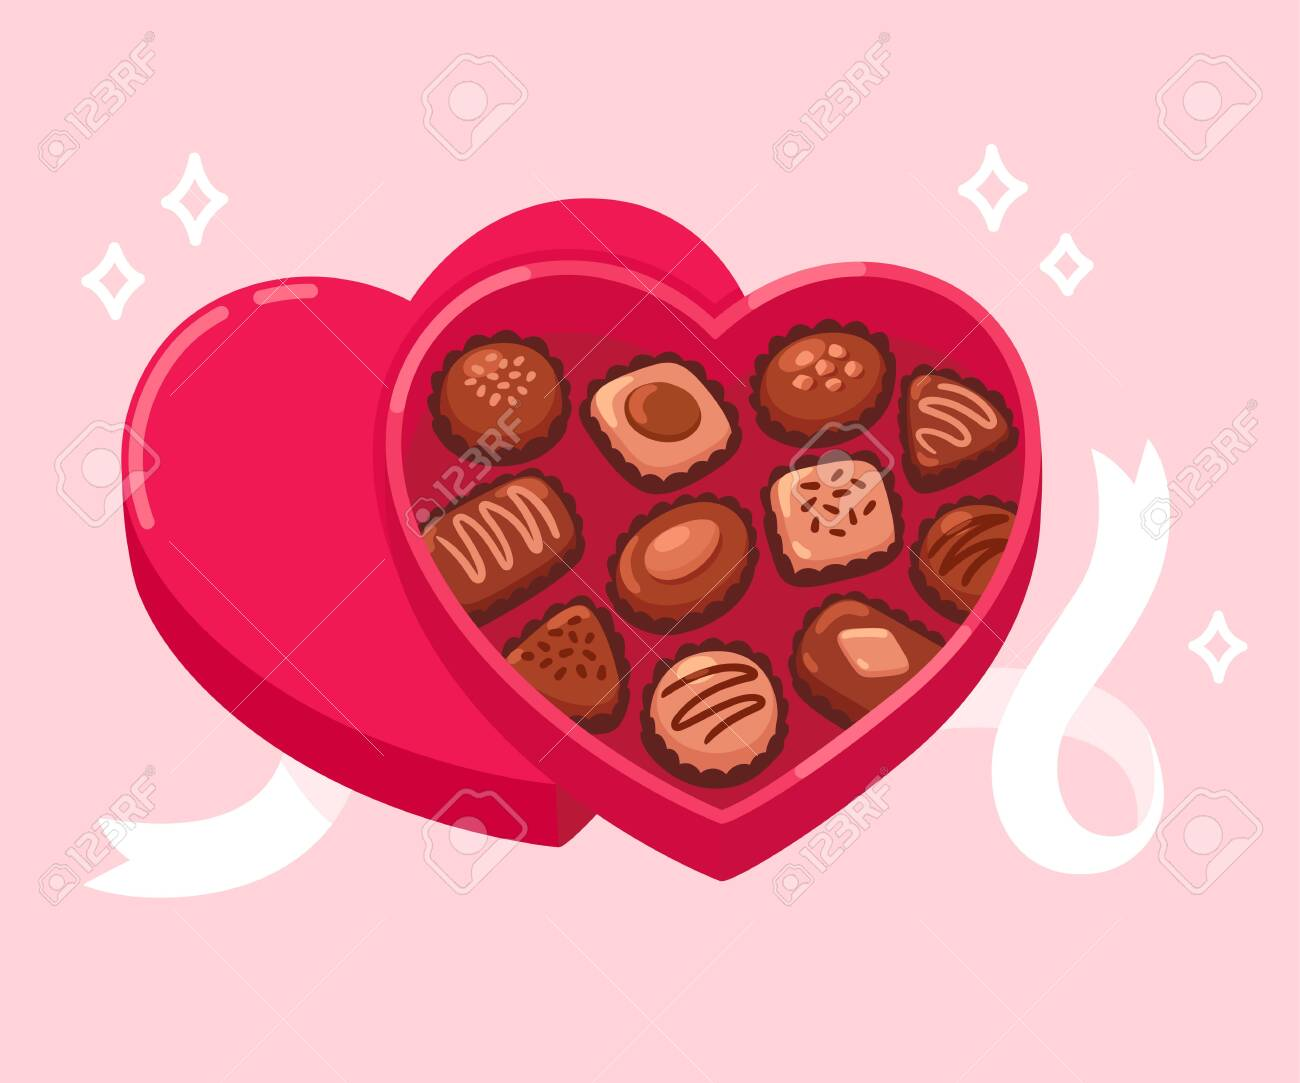 Open Heart Shaped Box Of Chocolates With White Ribbon On Pink Royalty Free Cliparts Vectors And Stock Illustration Image 142224596